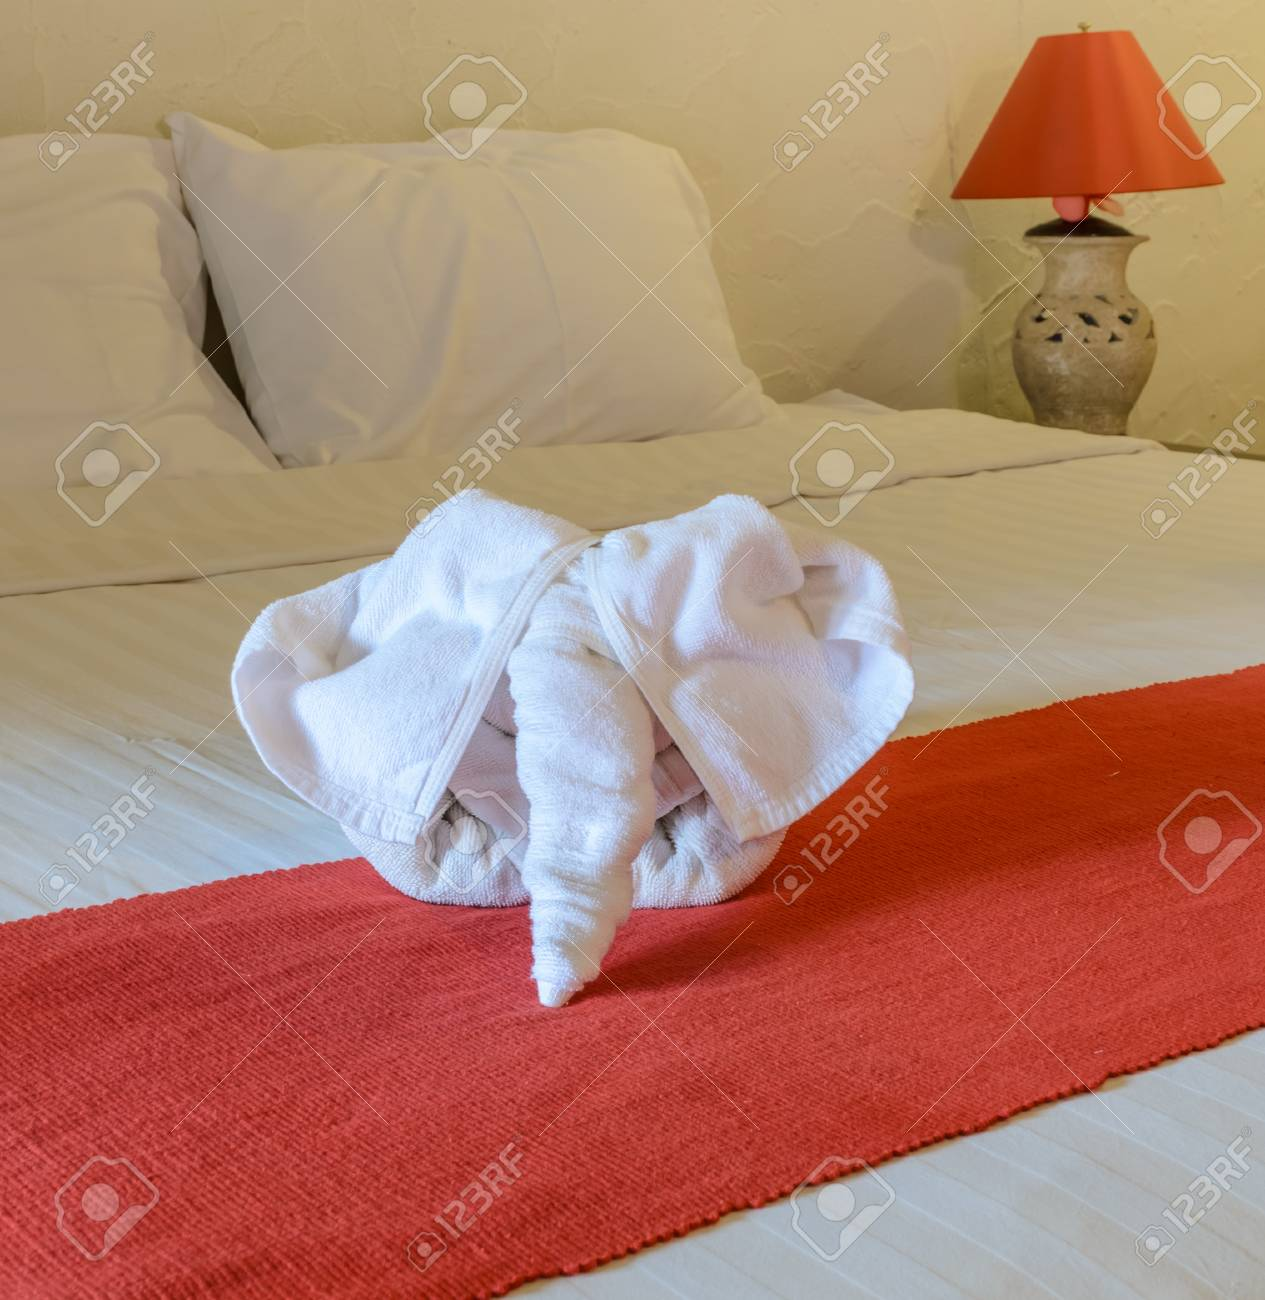 White Towel In Elephant Shape On White Bed In Thai Style Hotel Stock Photo Picture And Royalty Free Image Image 43355542